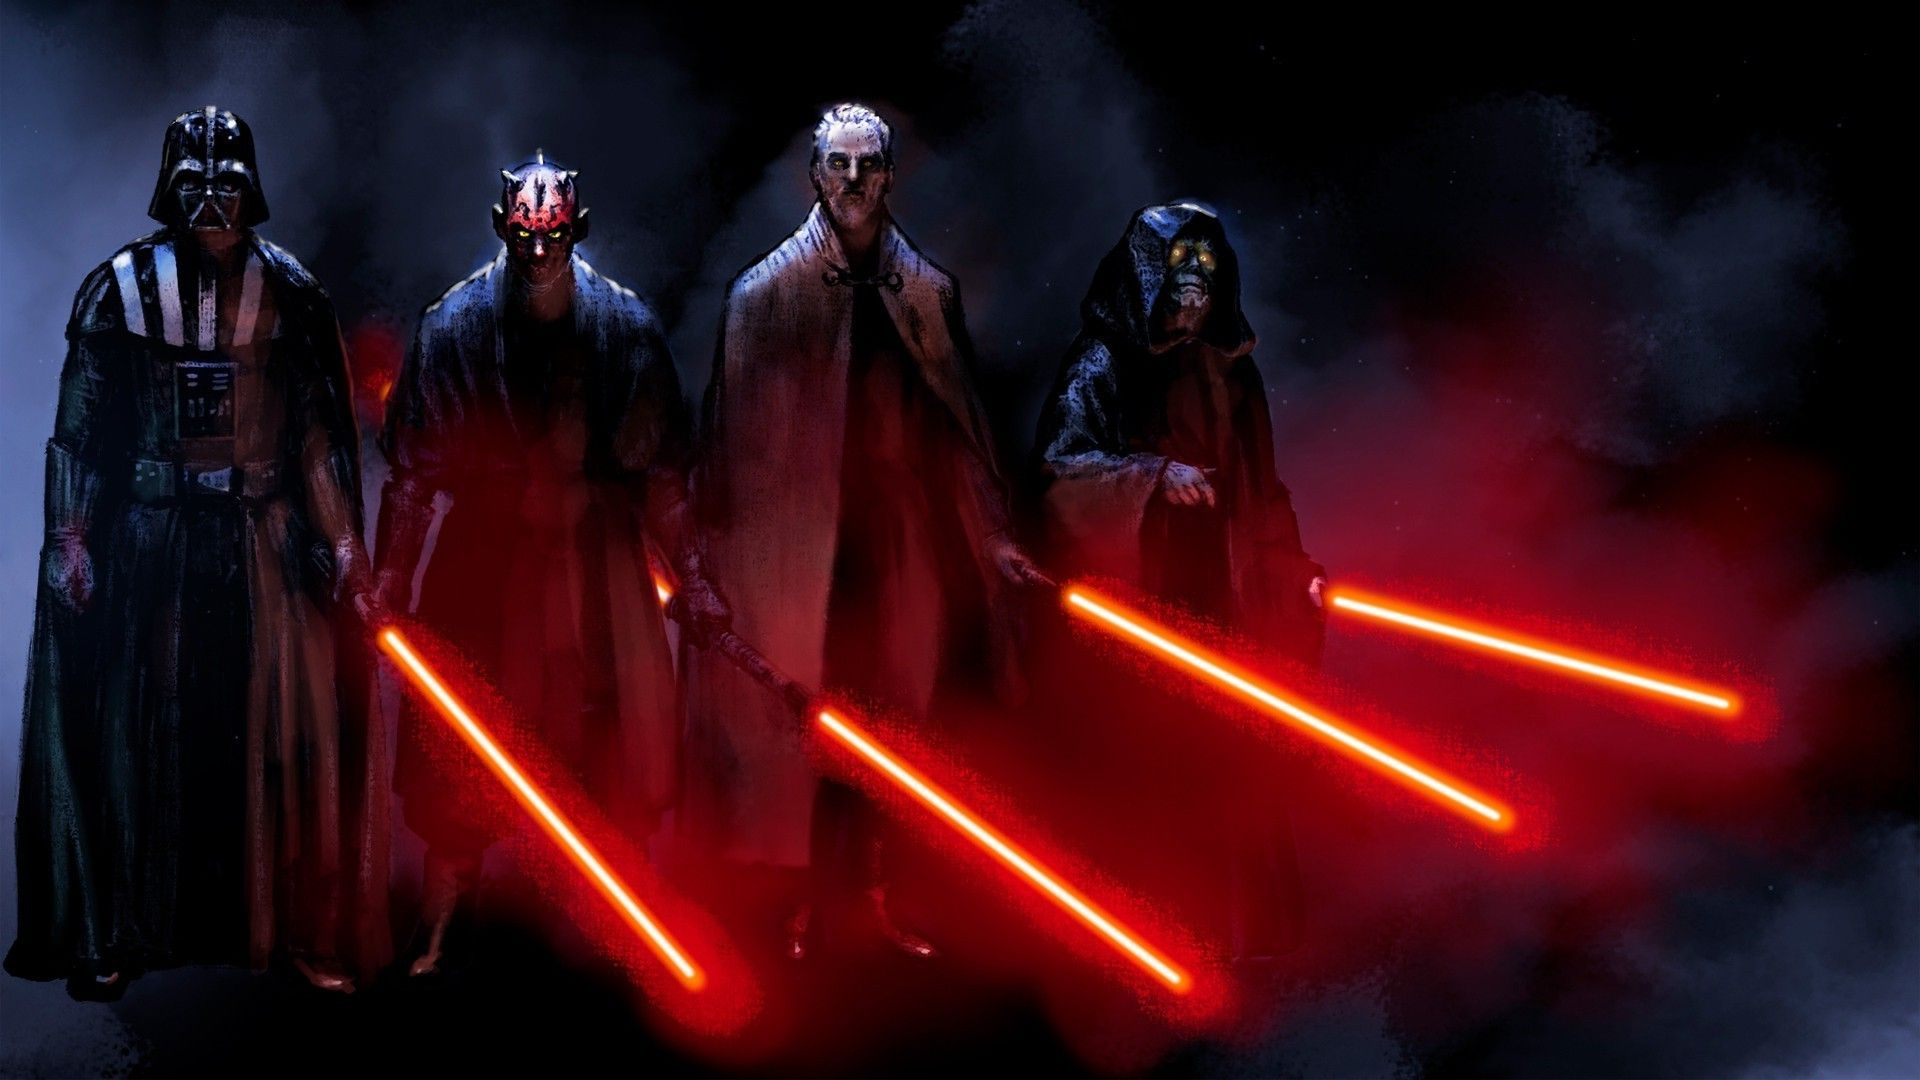 Sith Star Wars Wallpaper Star wars wallpaper, Star